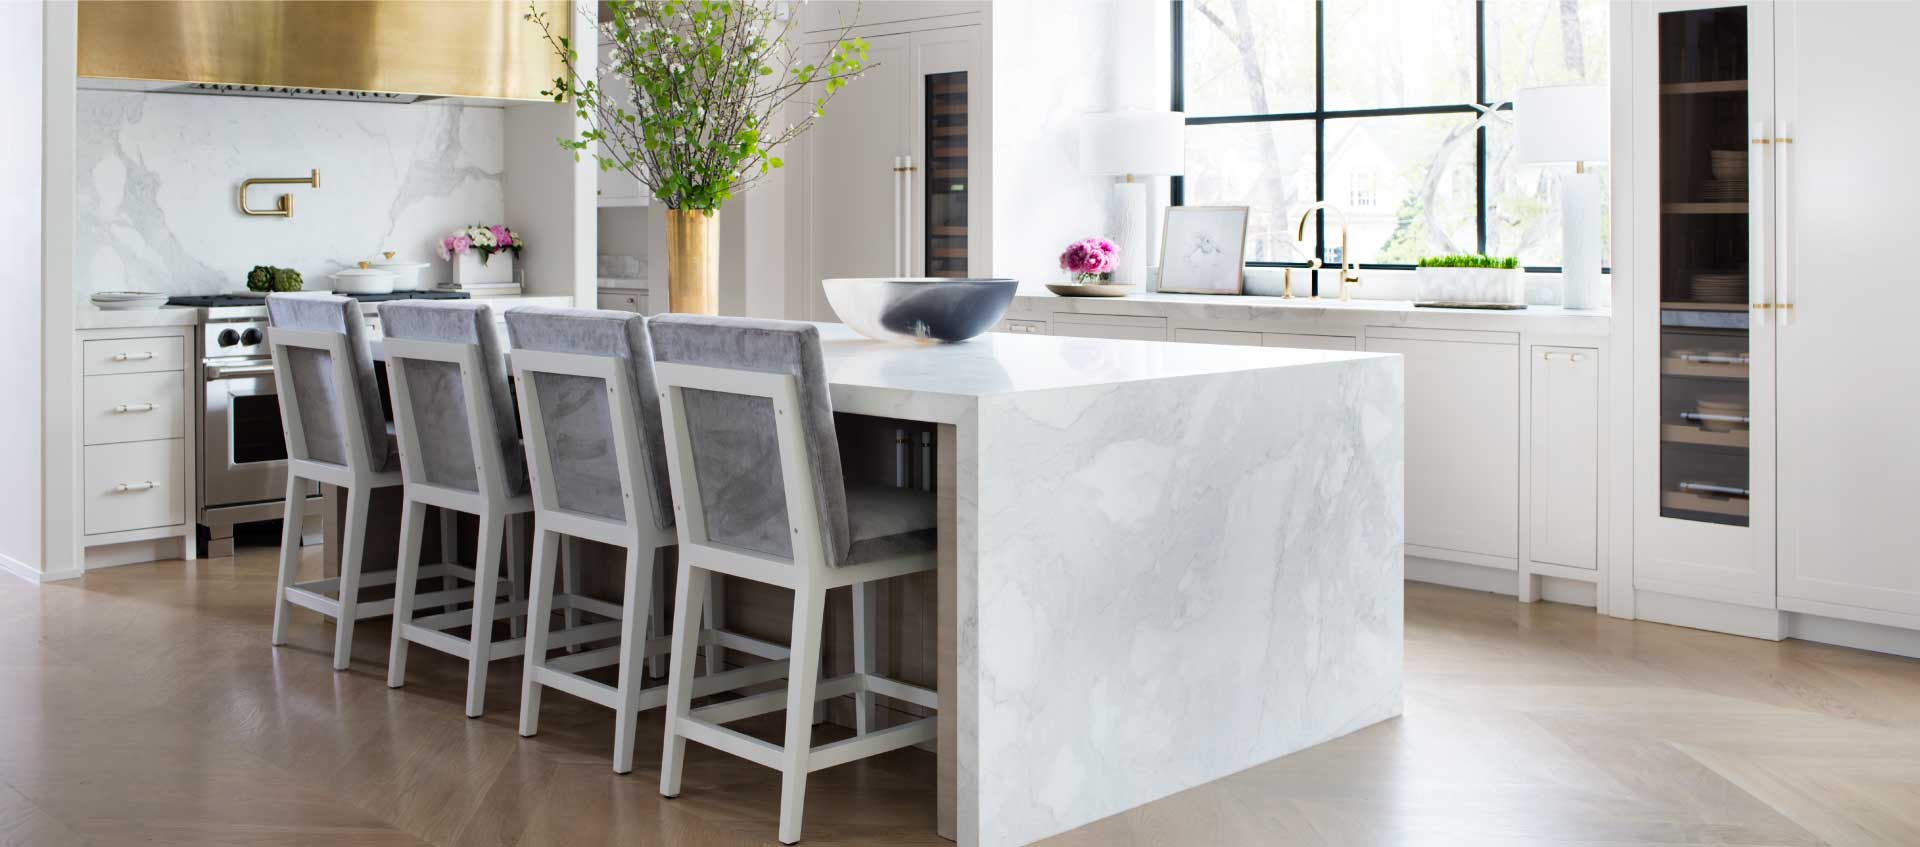 Miami Circle Marble & Fabrication – High End Marble